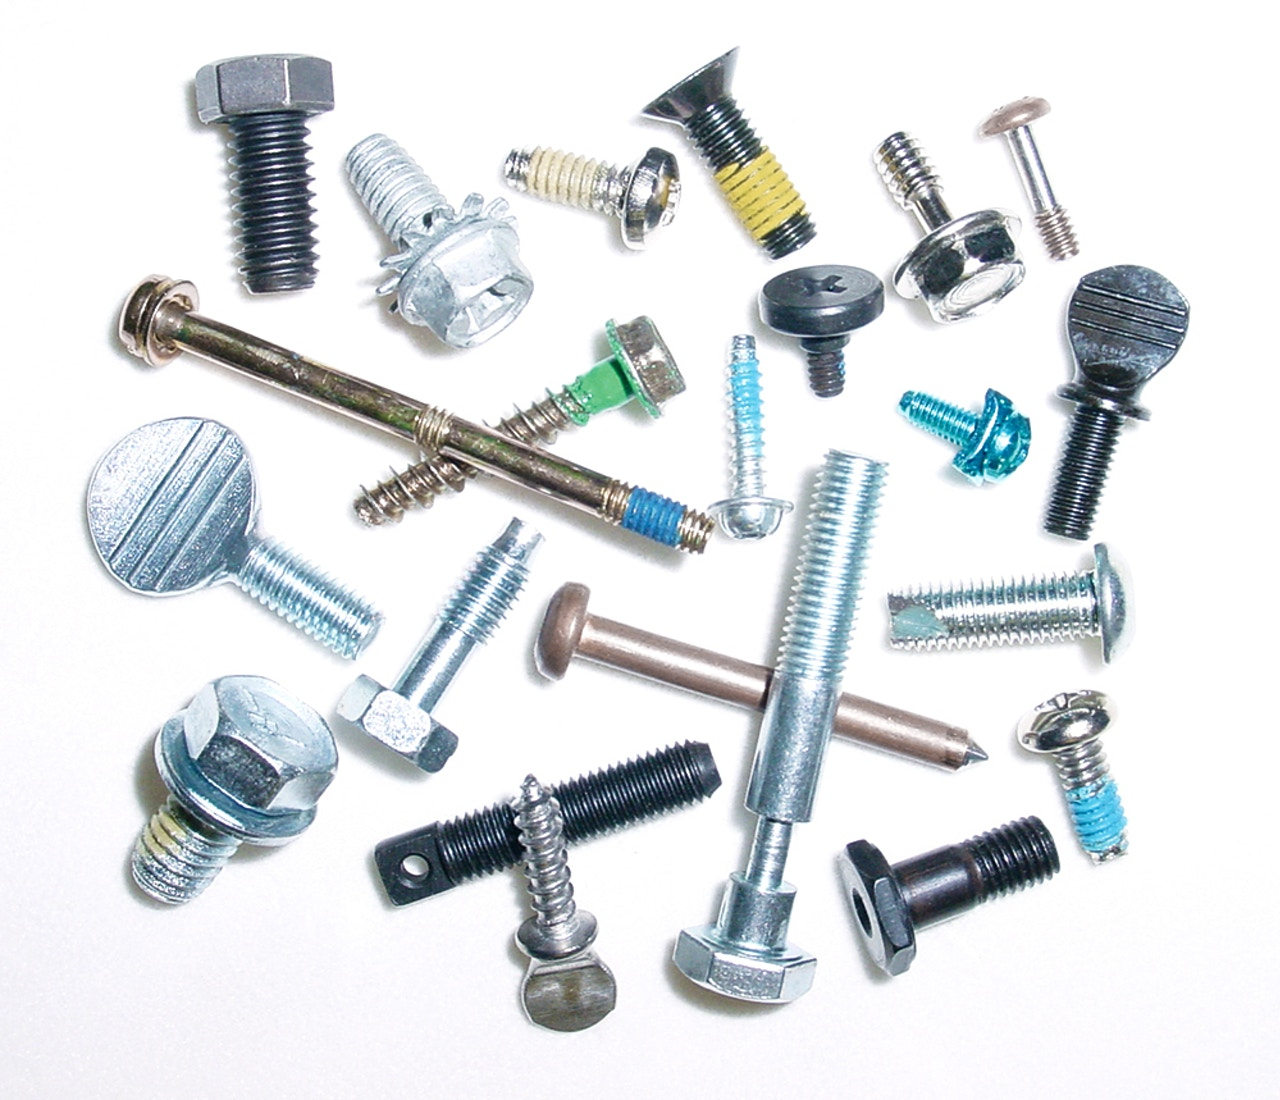 MW Components - Custom fastening solutions